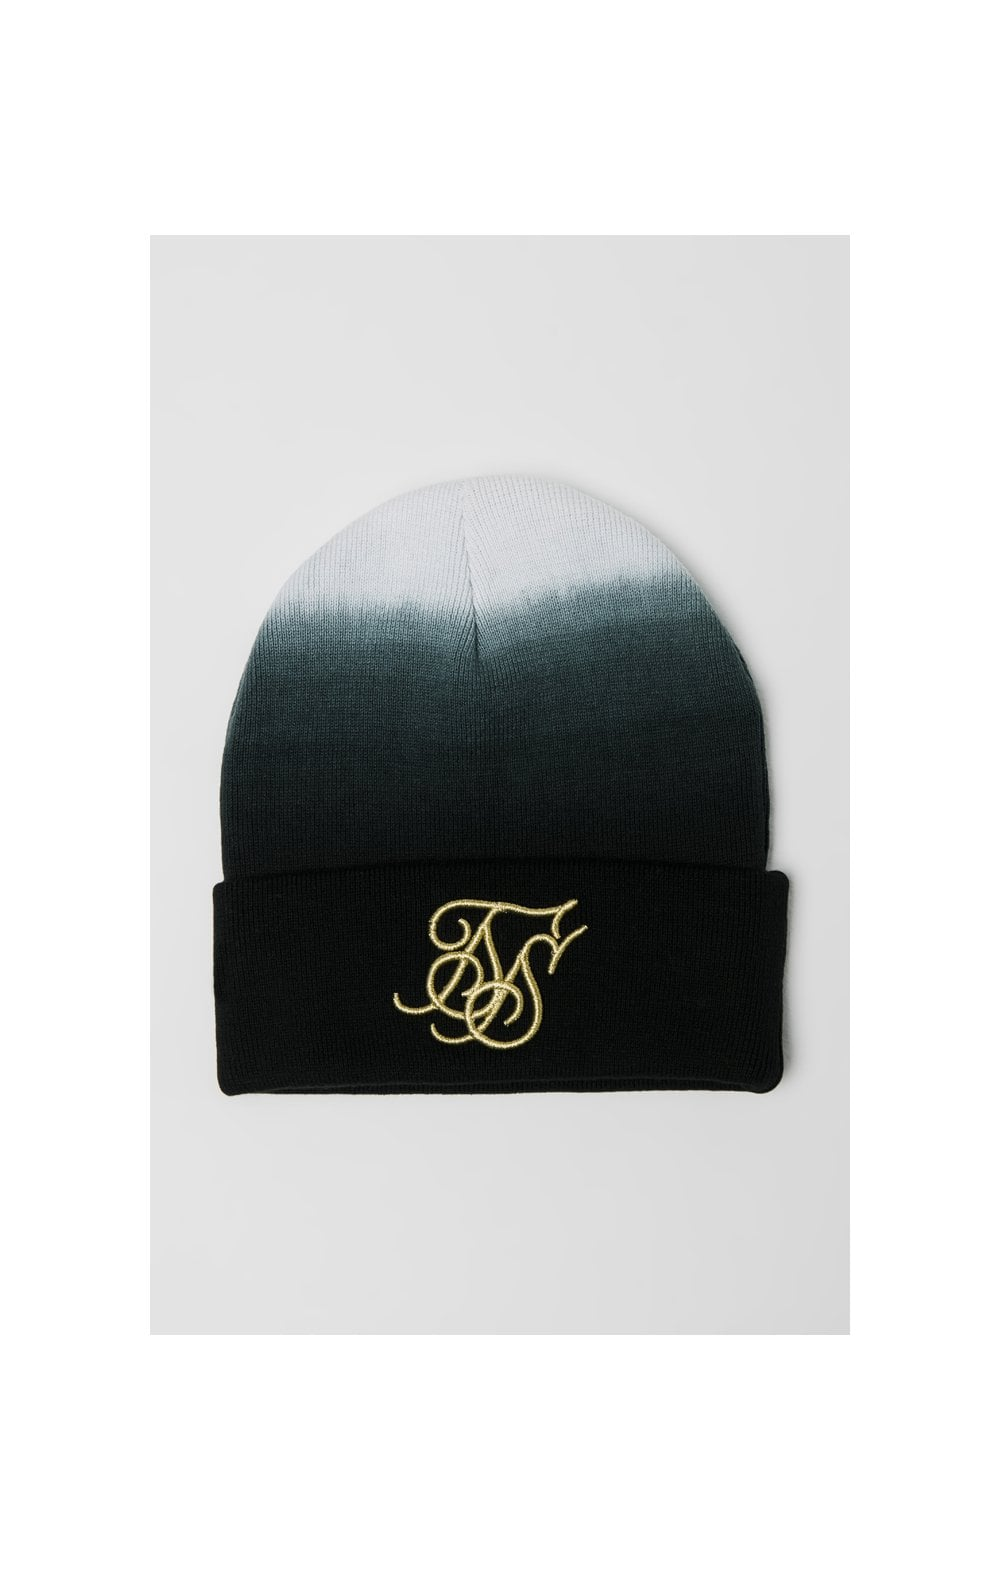 SikSilk Ombre Beanie - Back & White